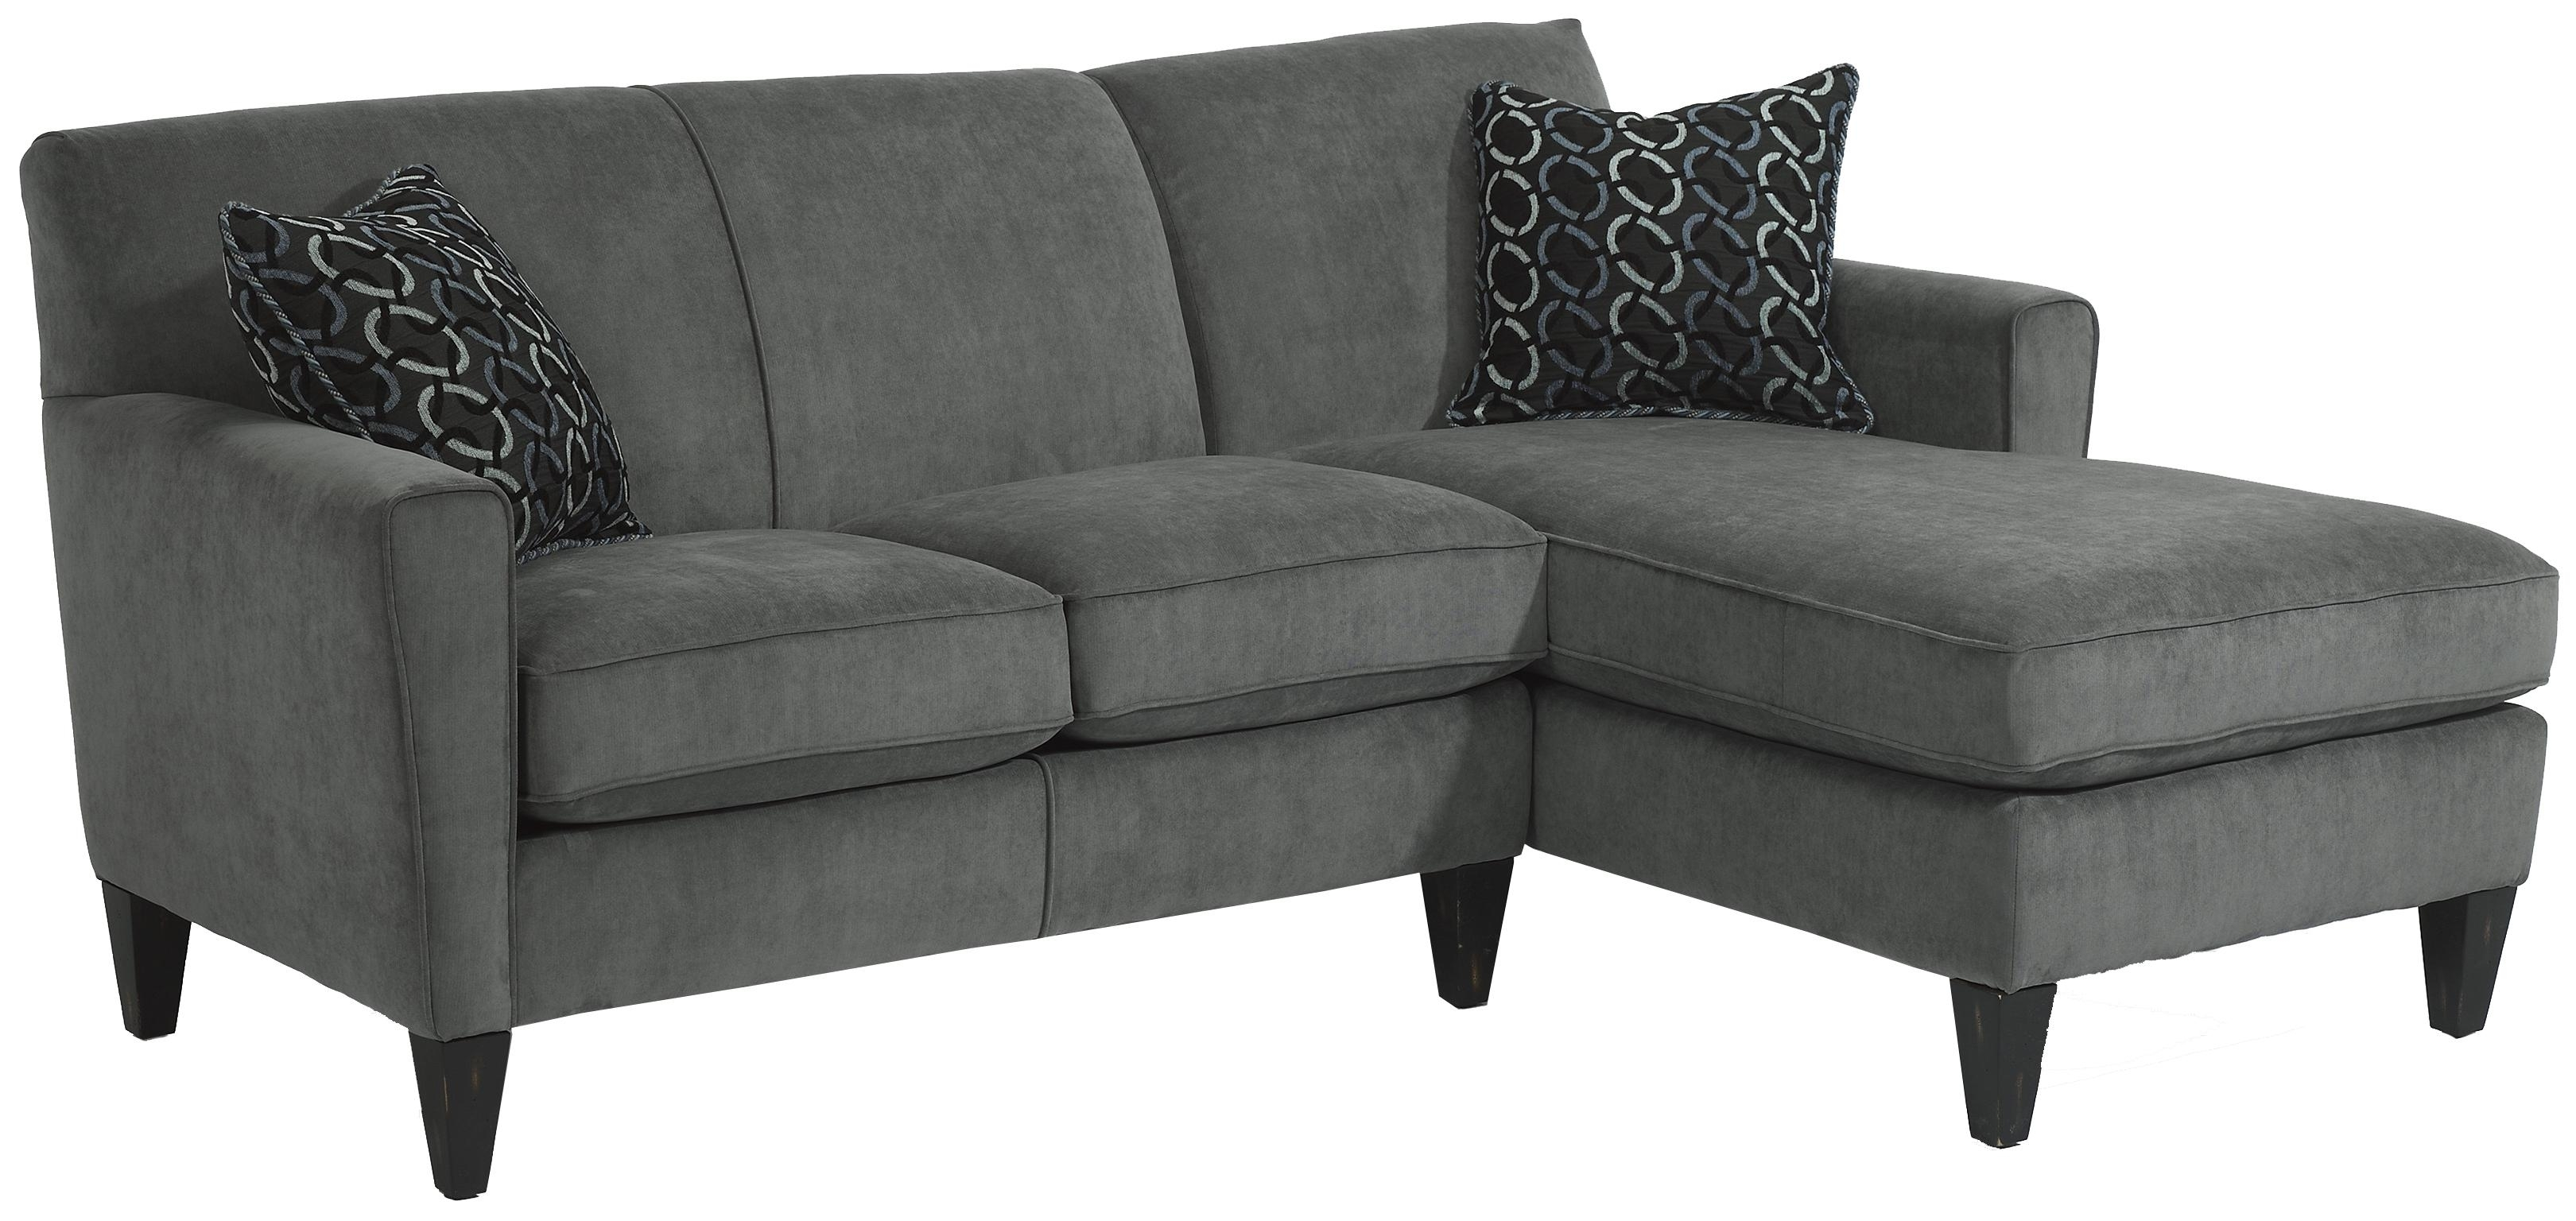 Flexsteel Digby Contemporary Sectional Sofa With Raf Chaise – Ahfa With Delano 2 Piece Sectionals With Raf Oversized Chaise (Image 16 of 25)